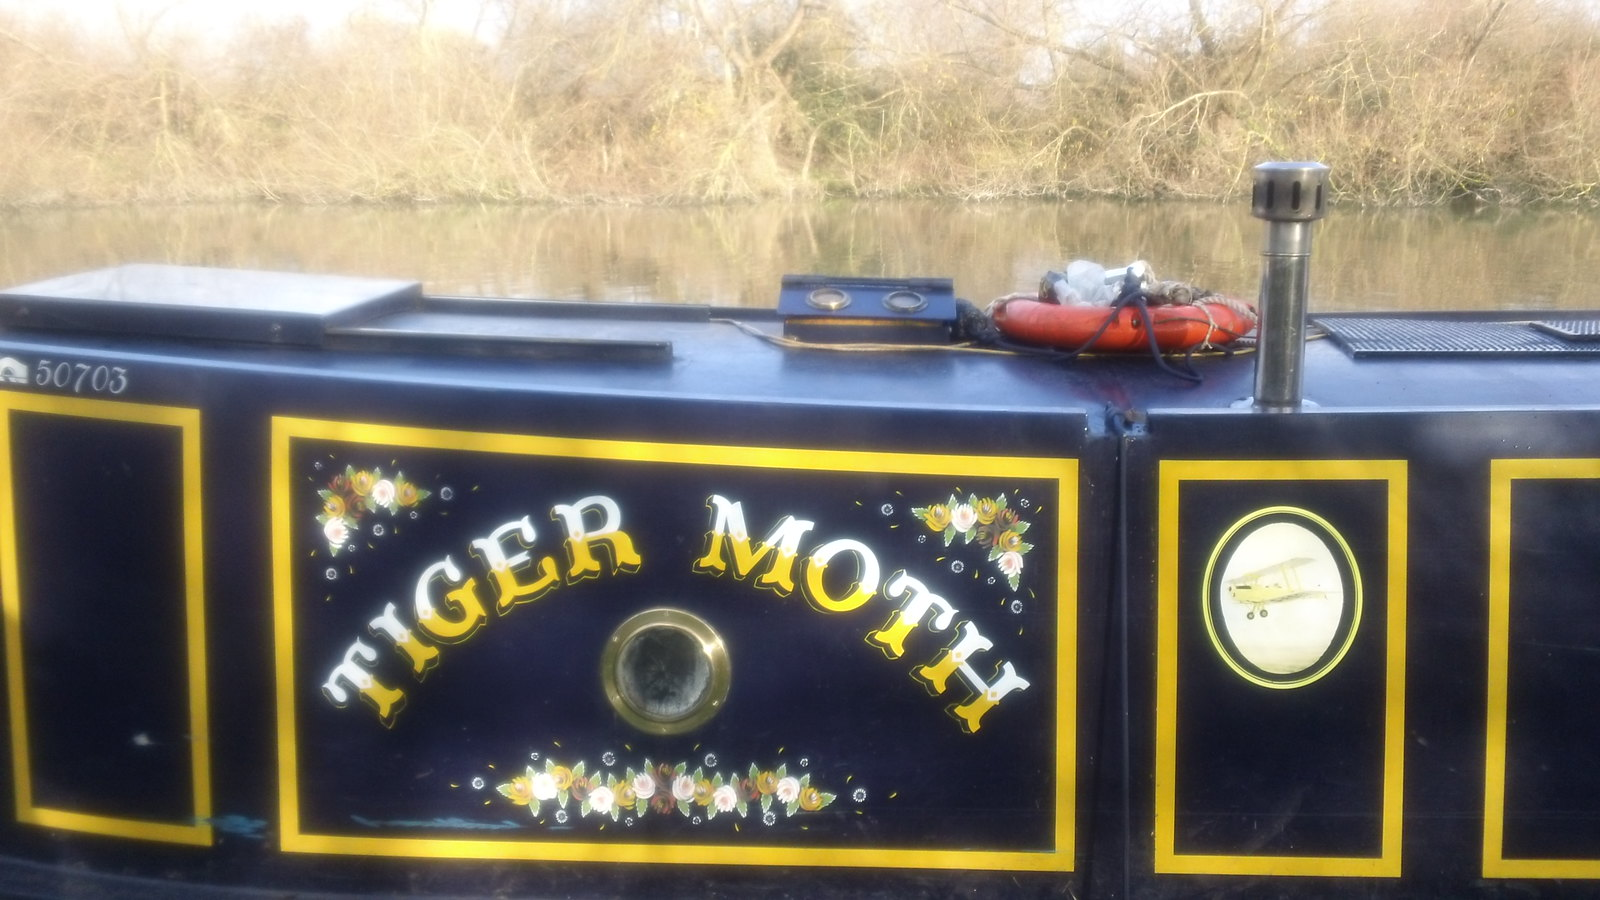 Tiger Moth on the Thames at Kings Meadow